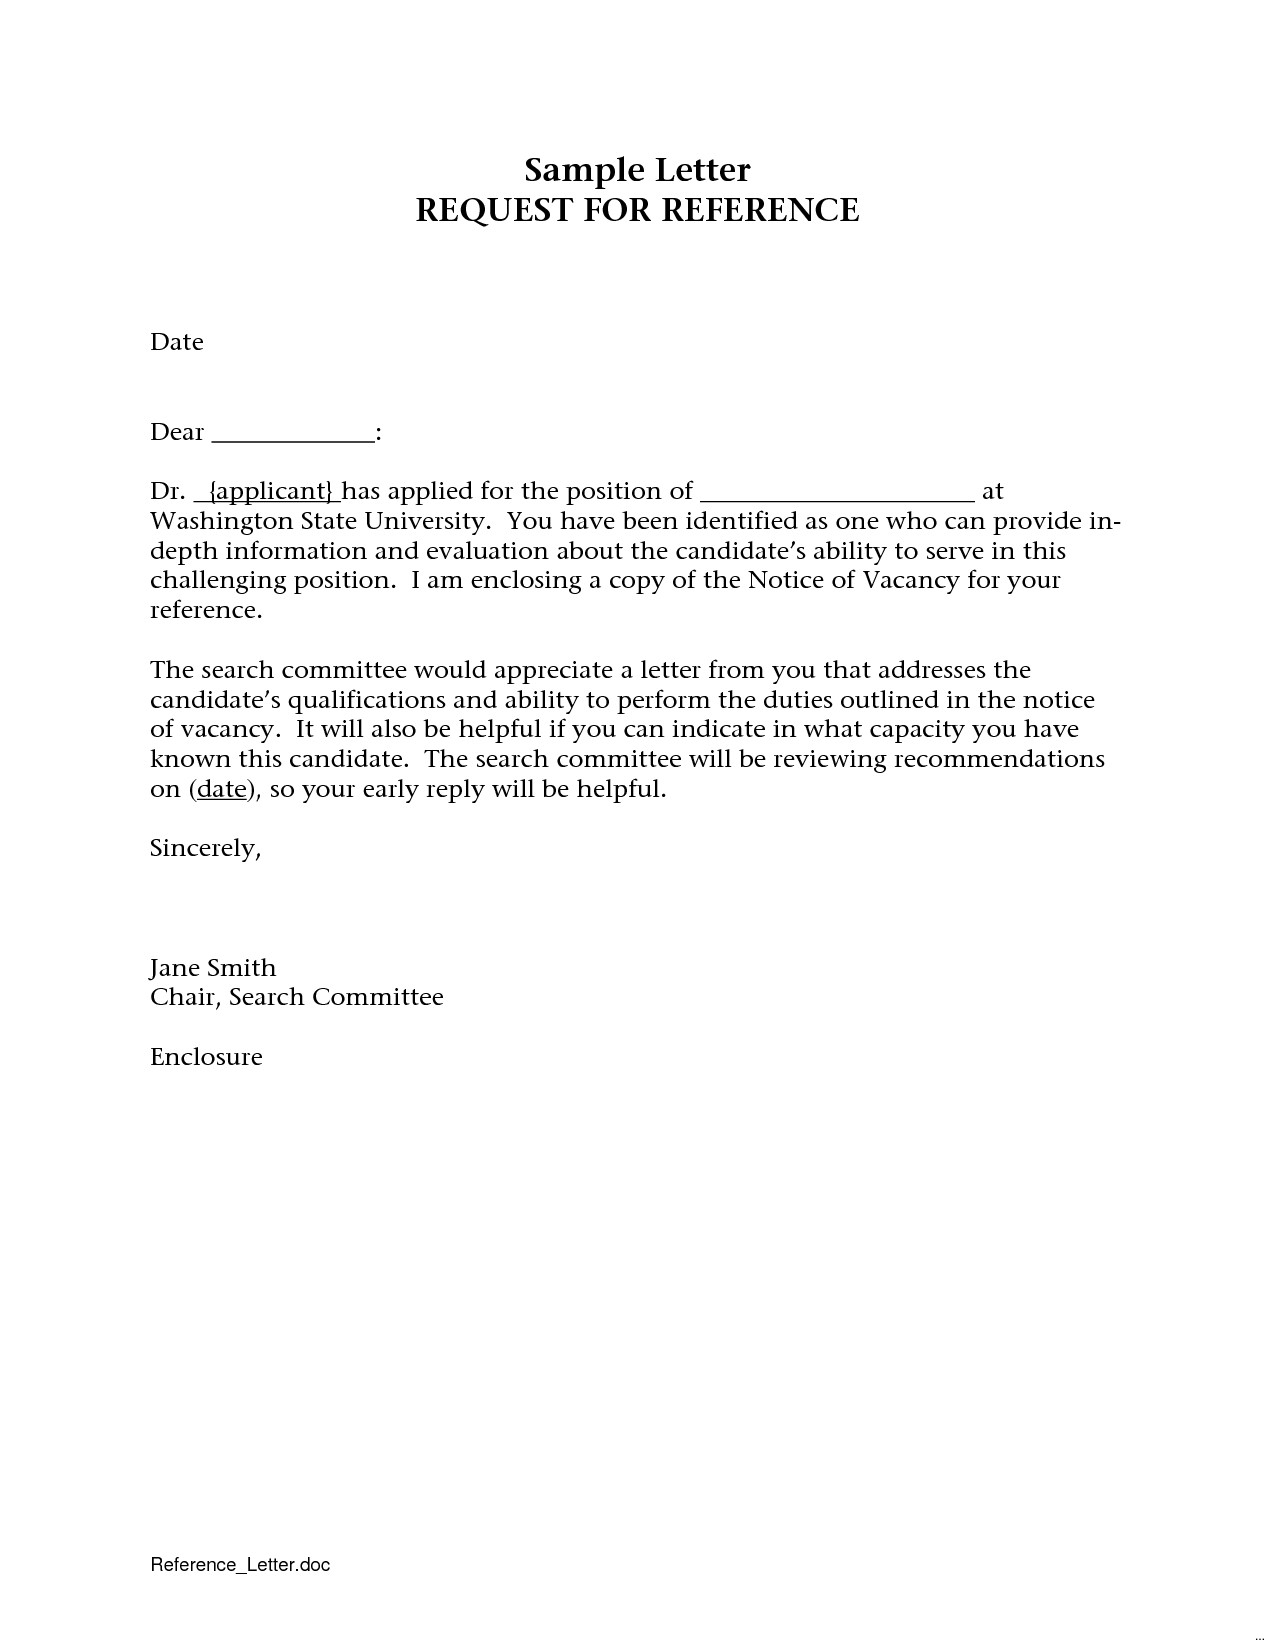 Letter Of Recommendation Request Template - Referee Request Email Sample Best Sample Reference Request Letter